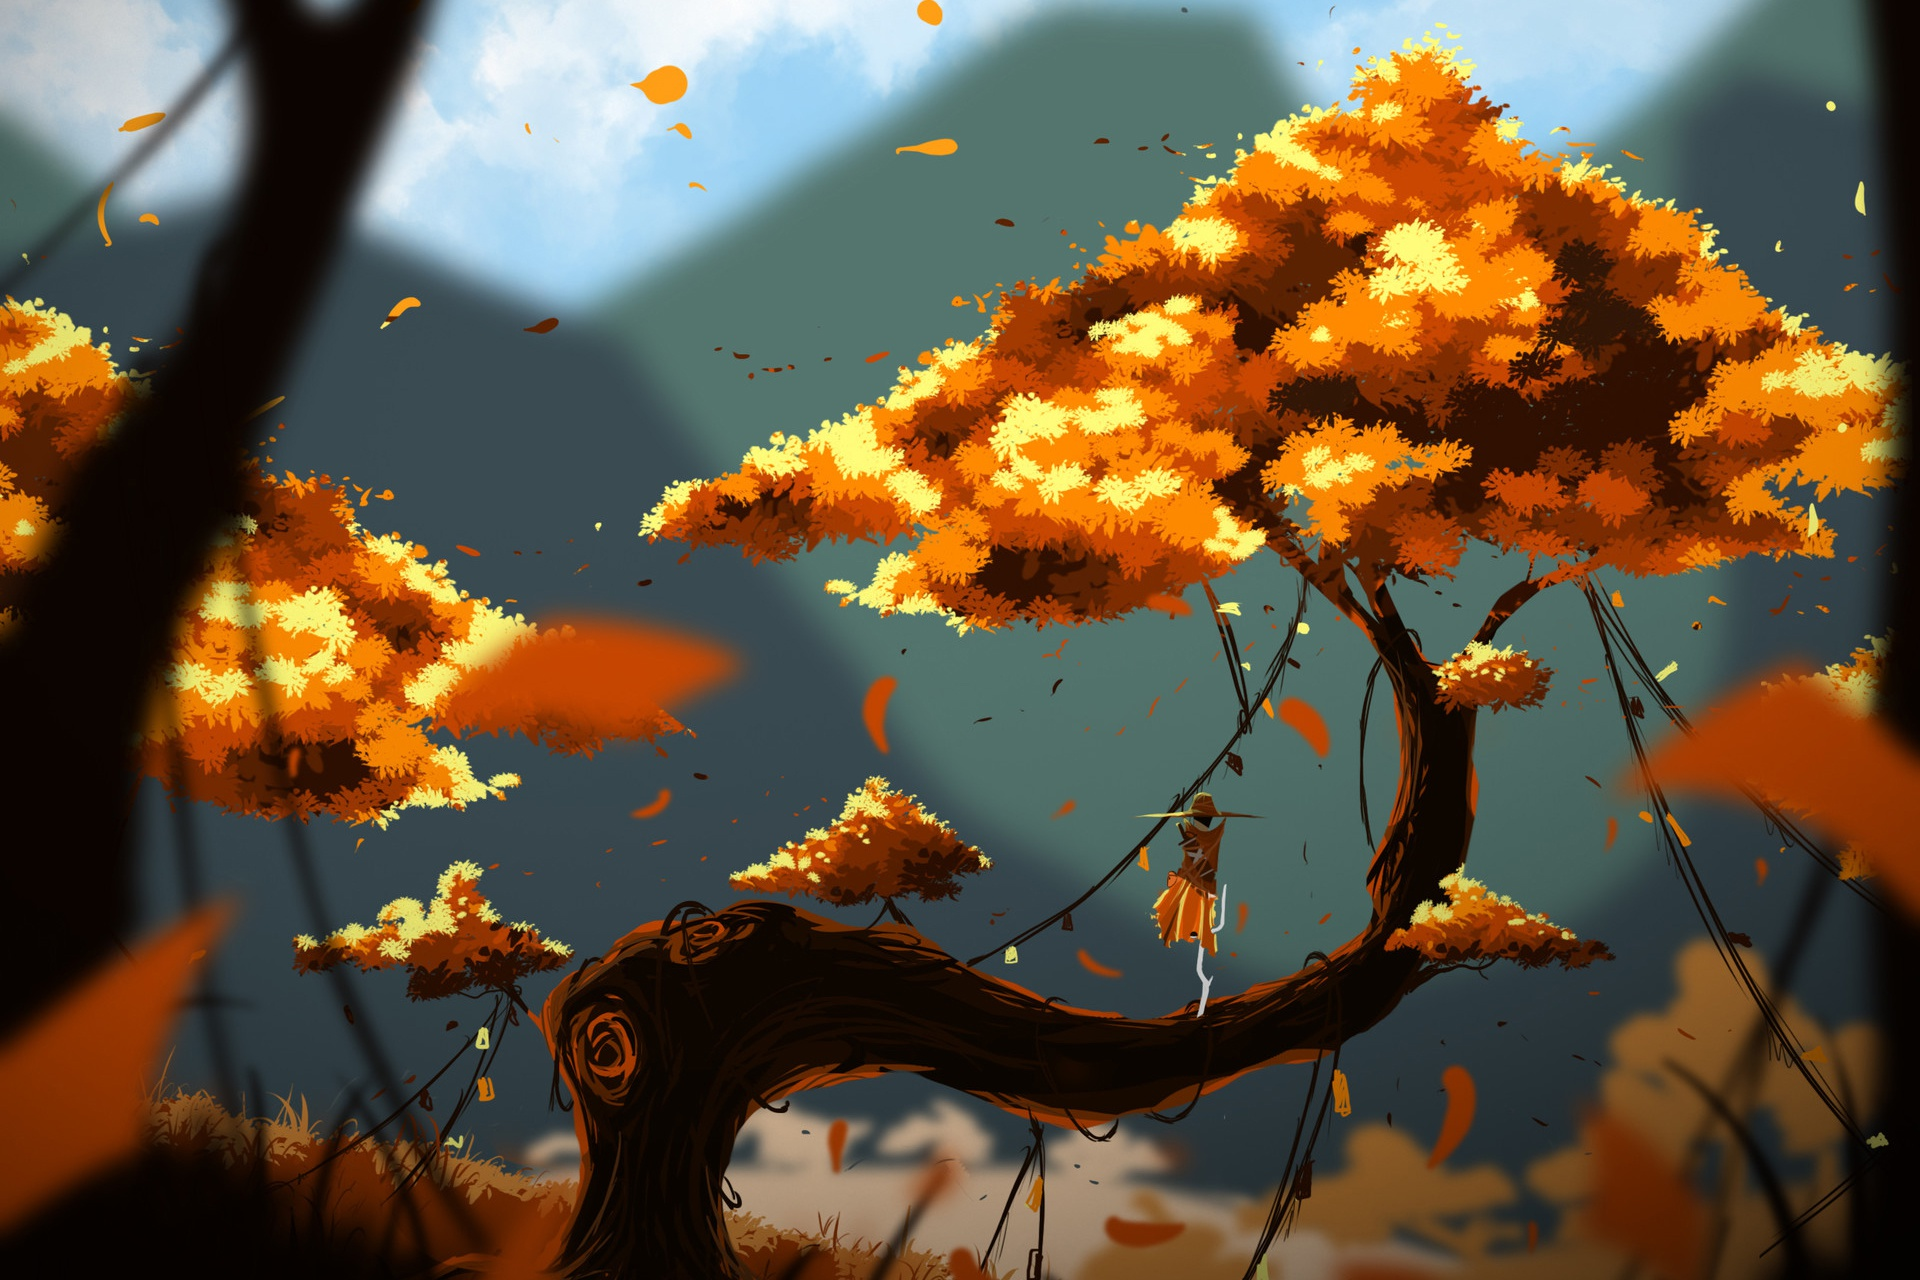 kung fu panda fall artwork branch landscape fallen leaves plants digital art blurred leaves nature trees